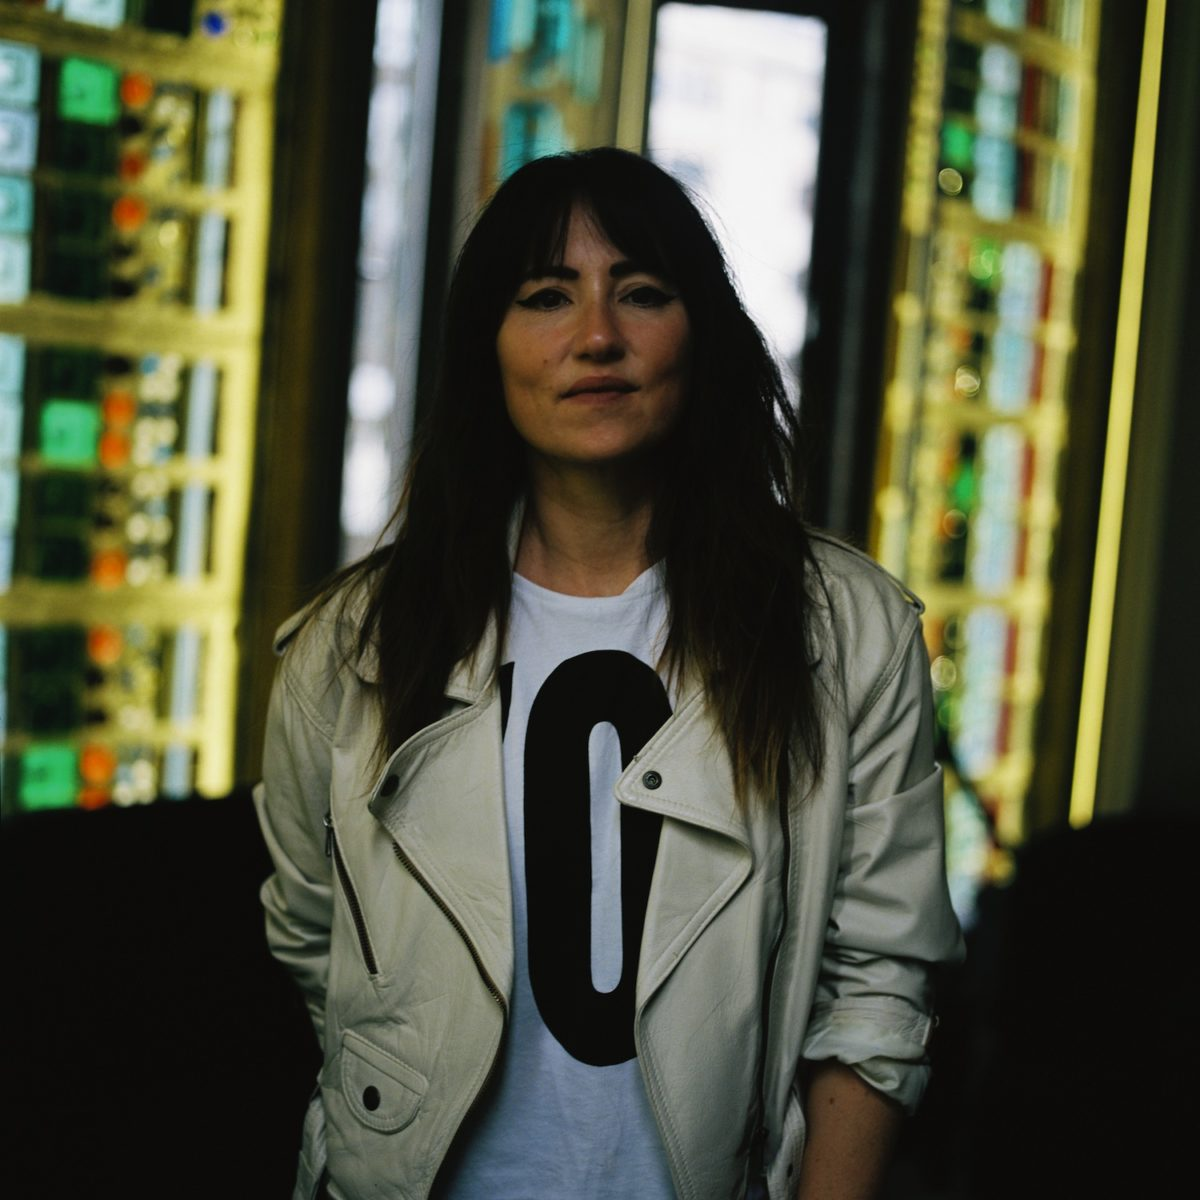 INTERVIEW: GET SPIRITUAL AND POLITICAL WITH SONGWRITER KT TUNSTALL